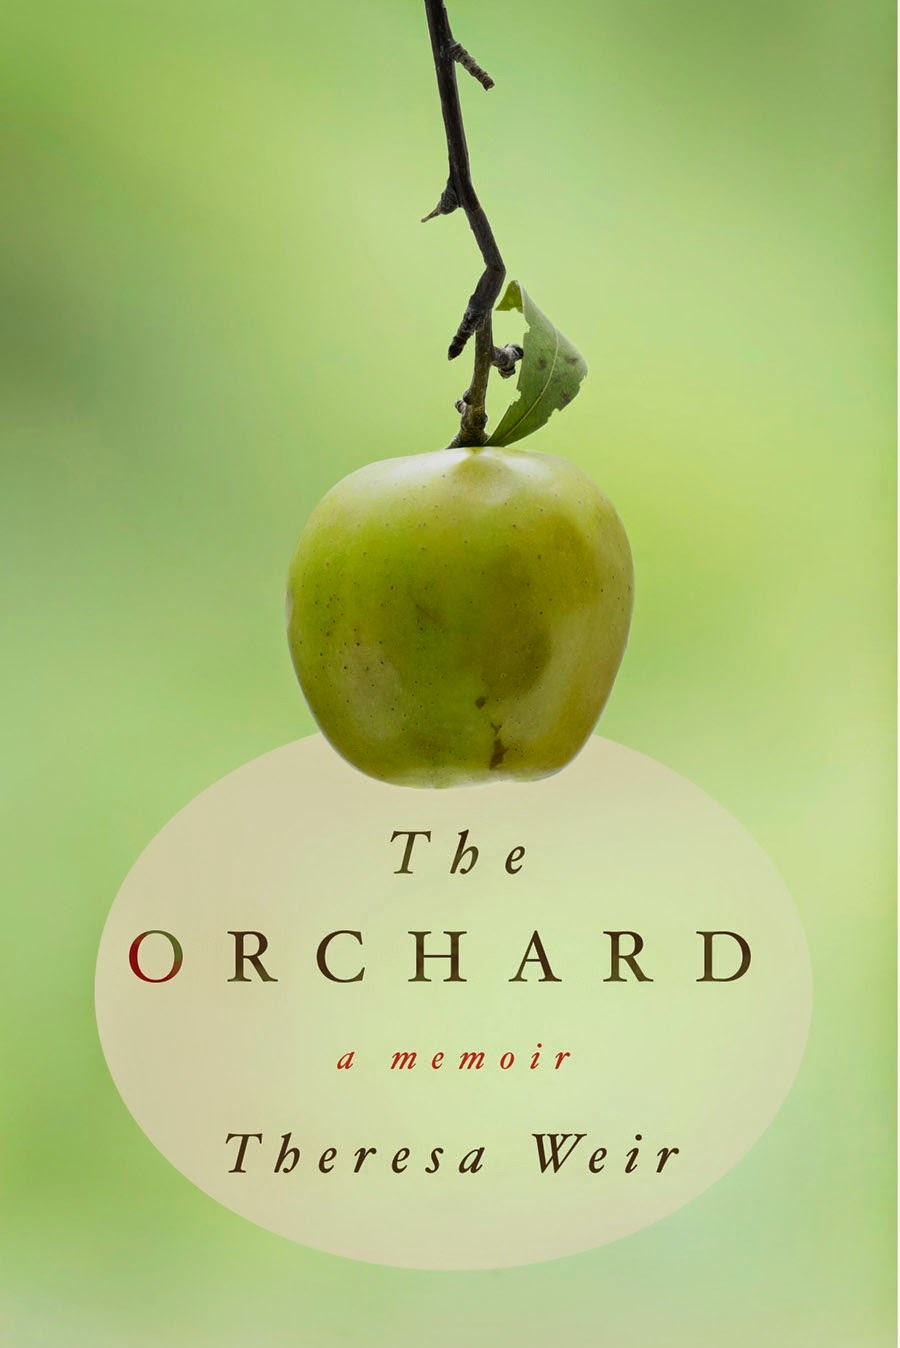 monkey a pen nonfiction essay the orchard